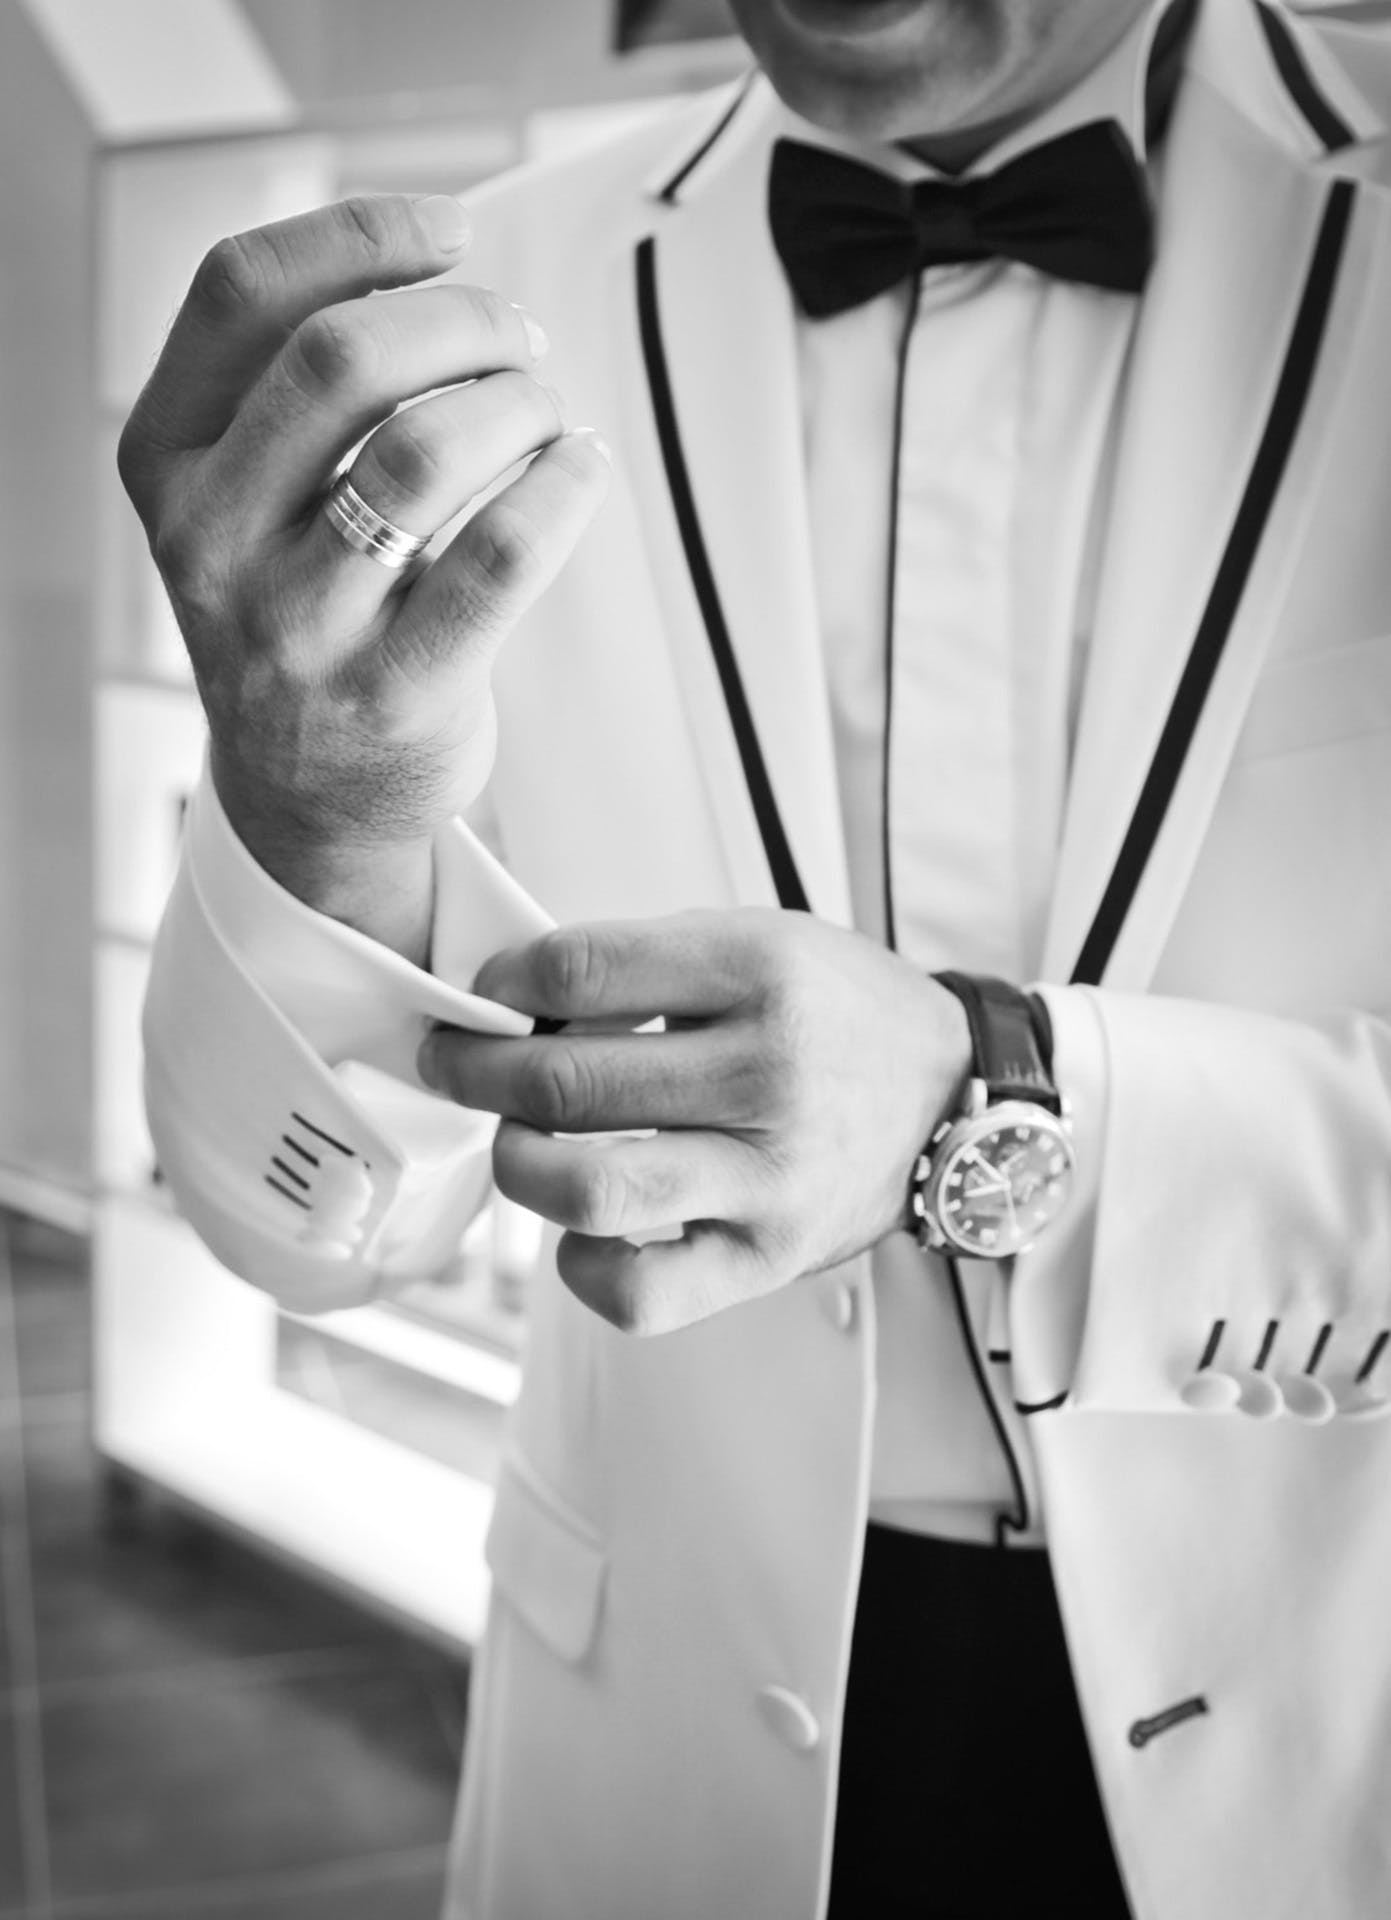 Man Wearing Tuxedo in Grayscale Photography